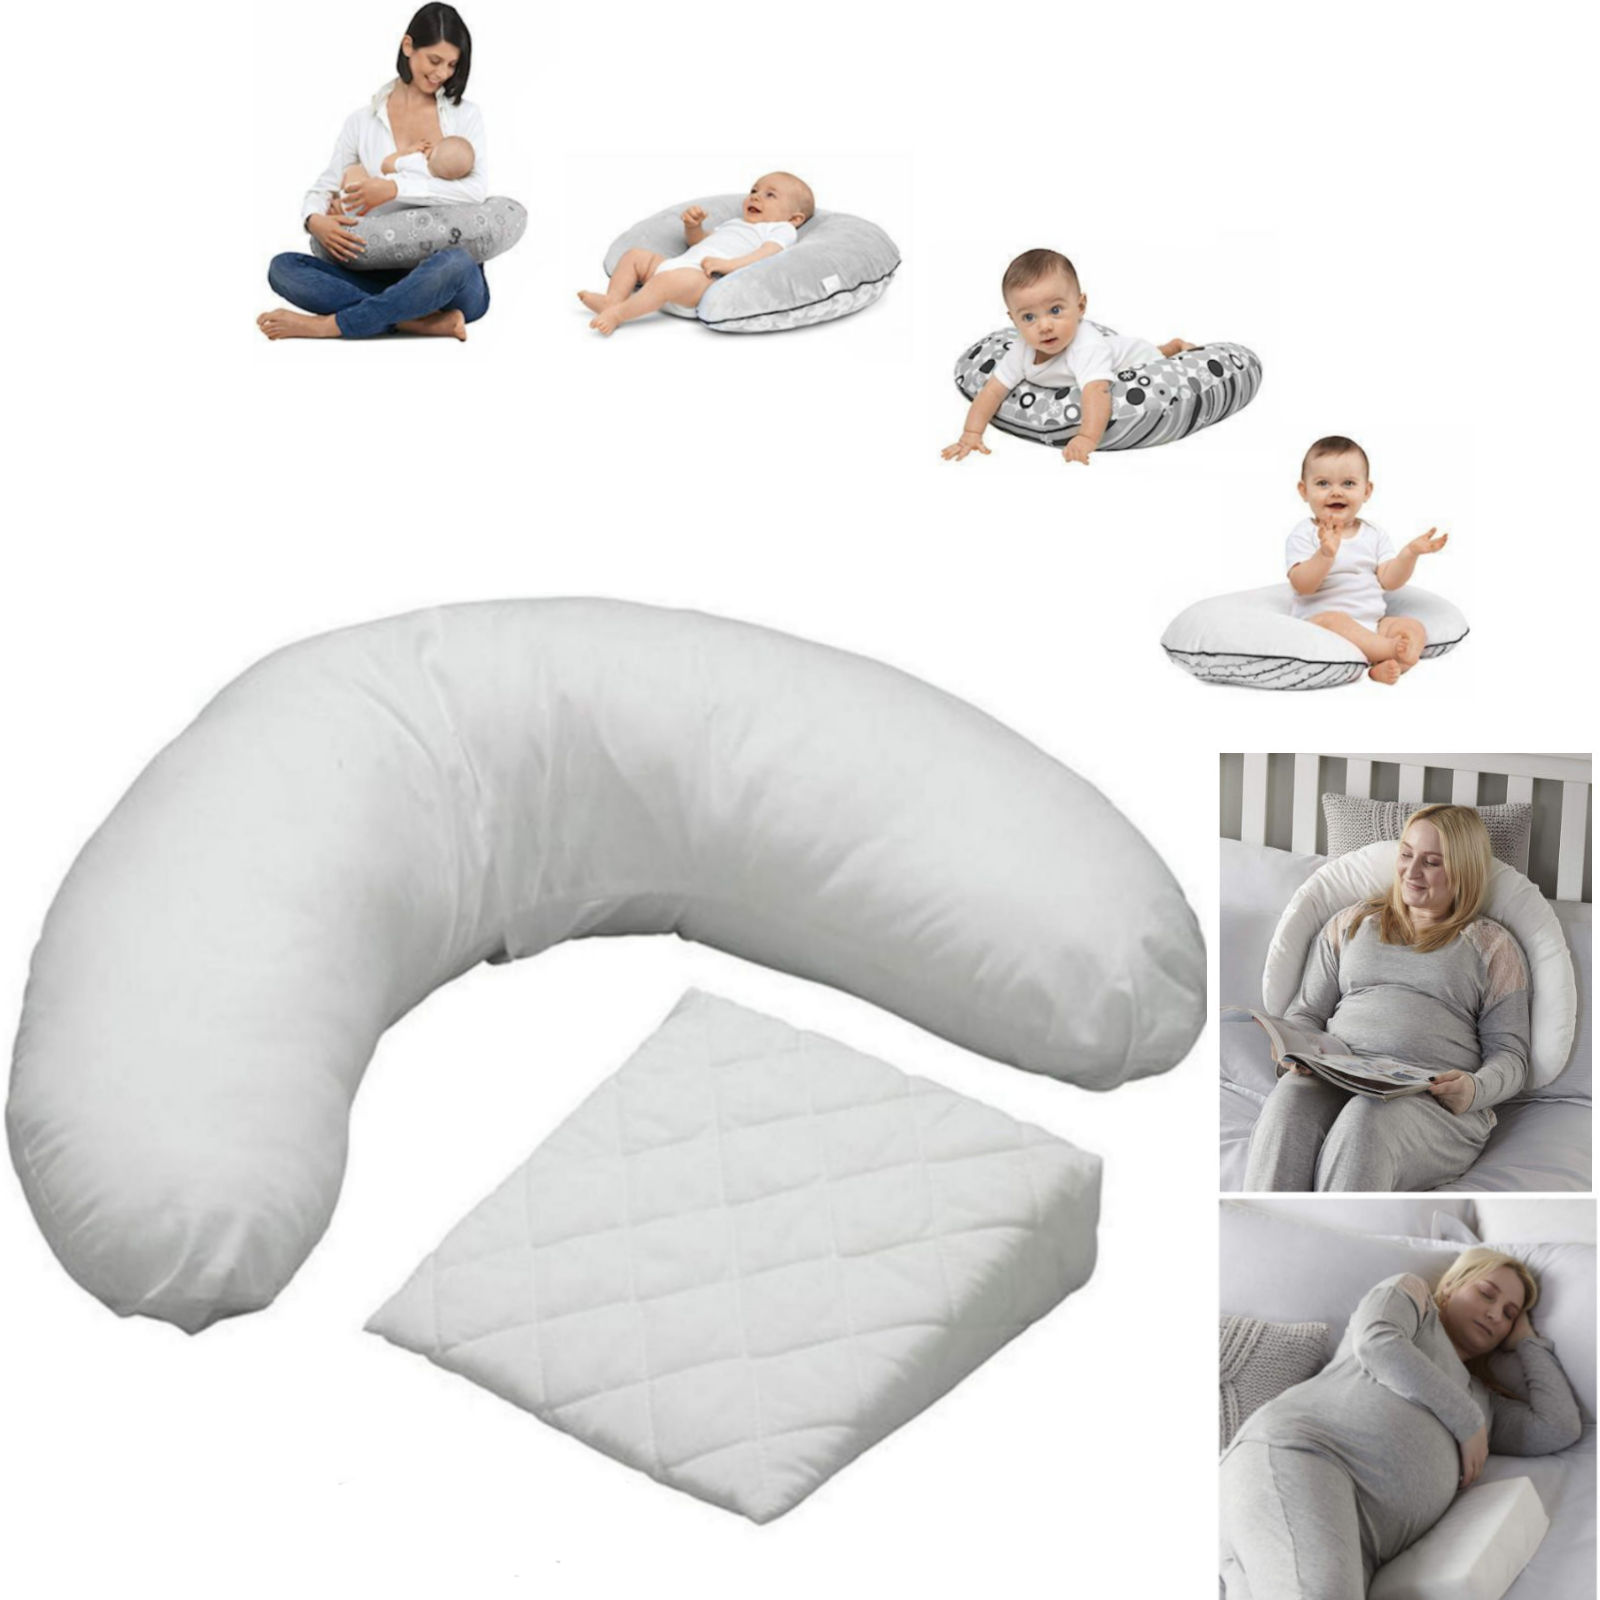 Spend for a Maternity Support Pillow